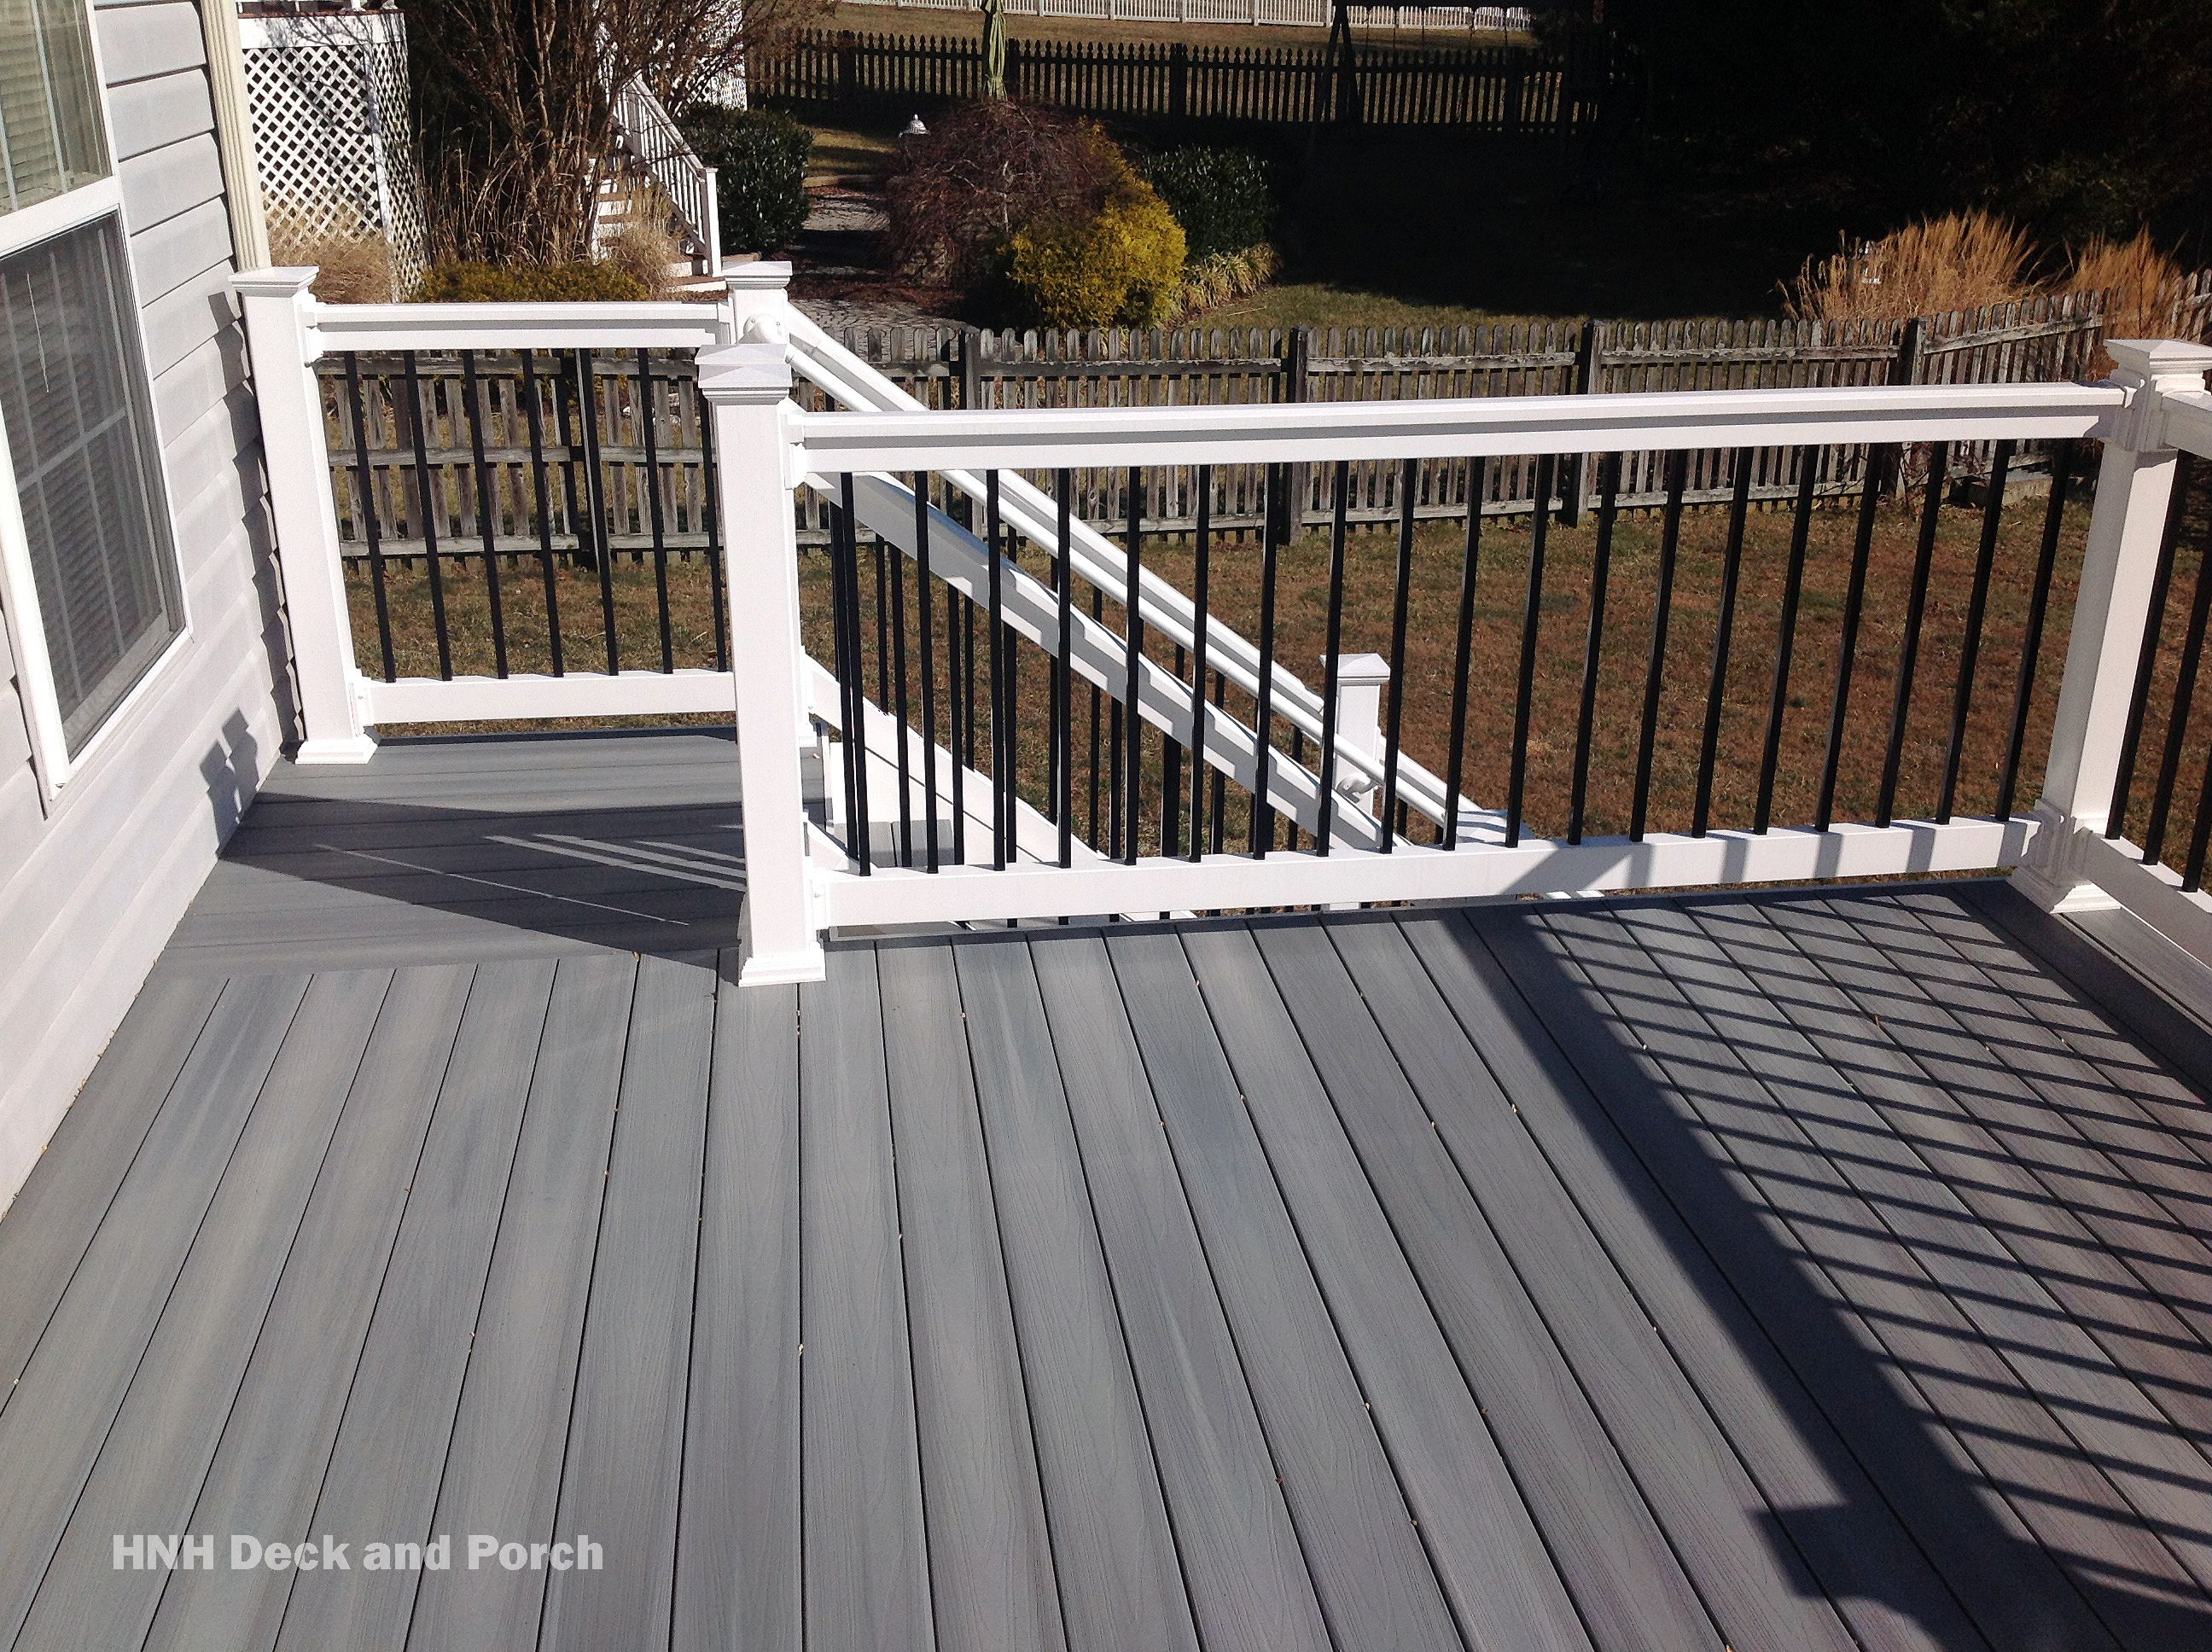 Composite Deck Using Fiberondecking Castle Grey Decking With White Pvc Railing And Black Square Aluminum Baers